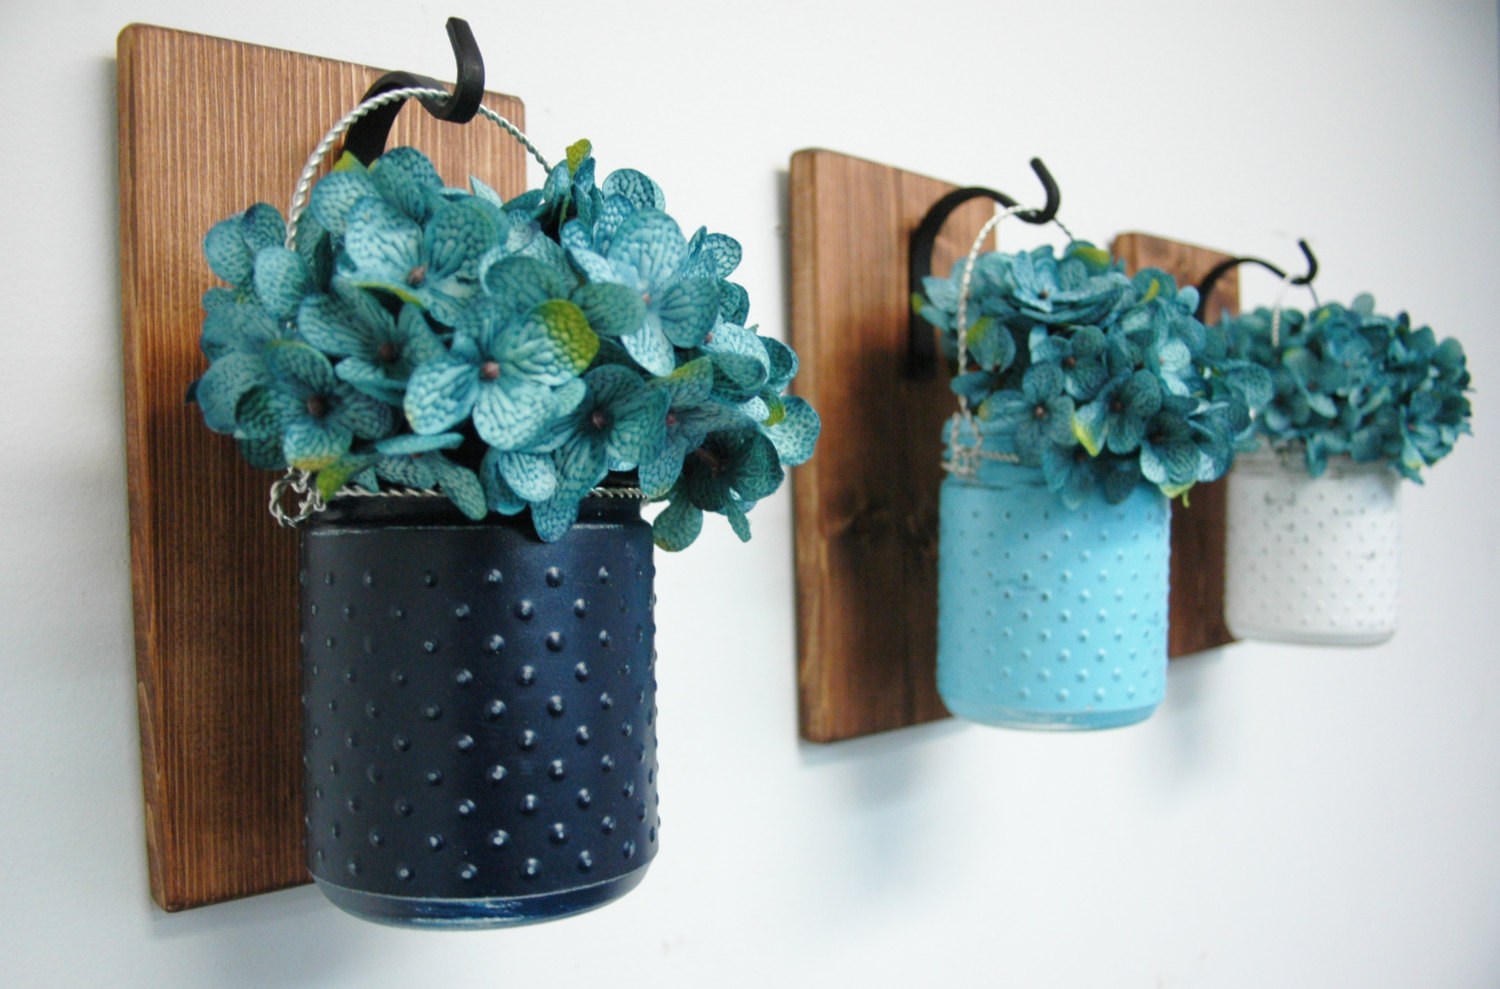 Handmade Decoration For Wall : The plus side of handmade wall d?cor adorable home